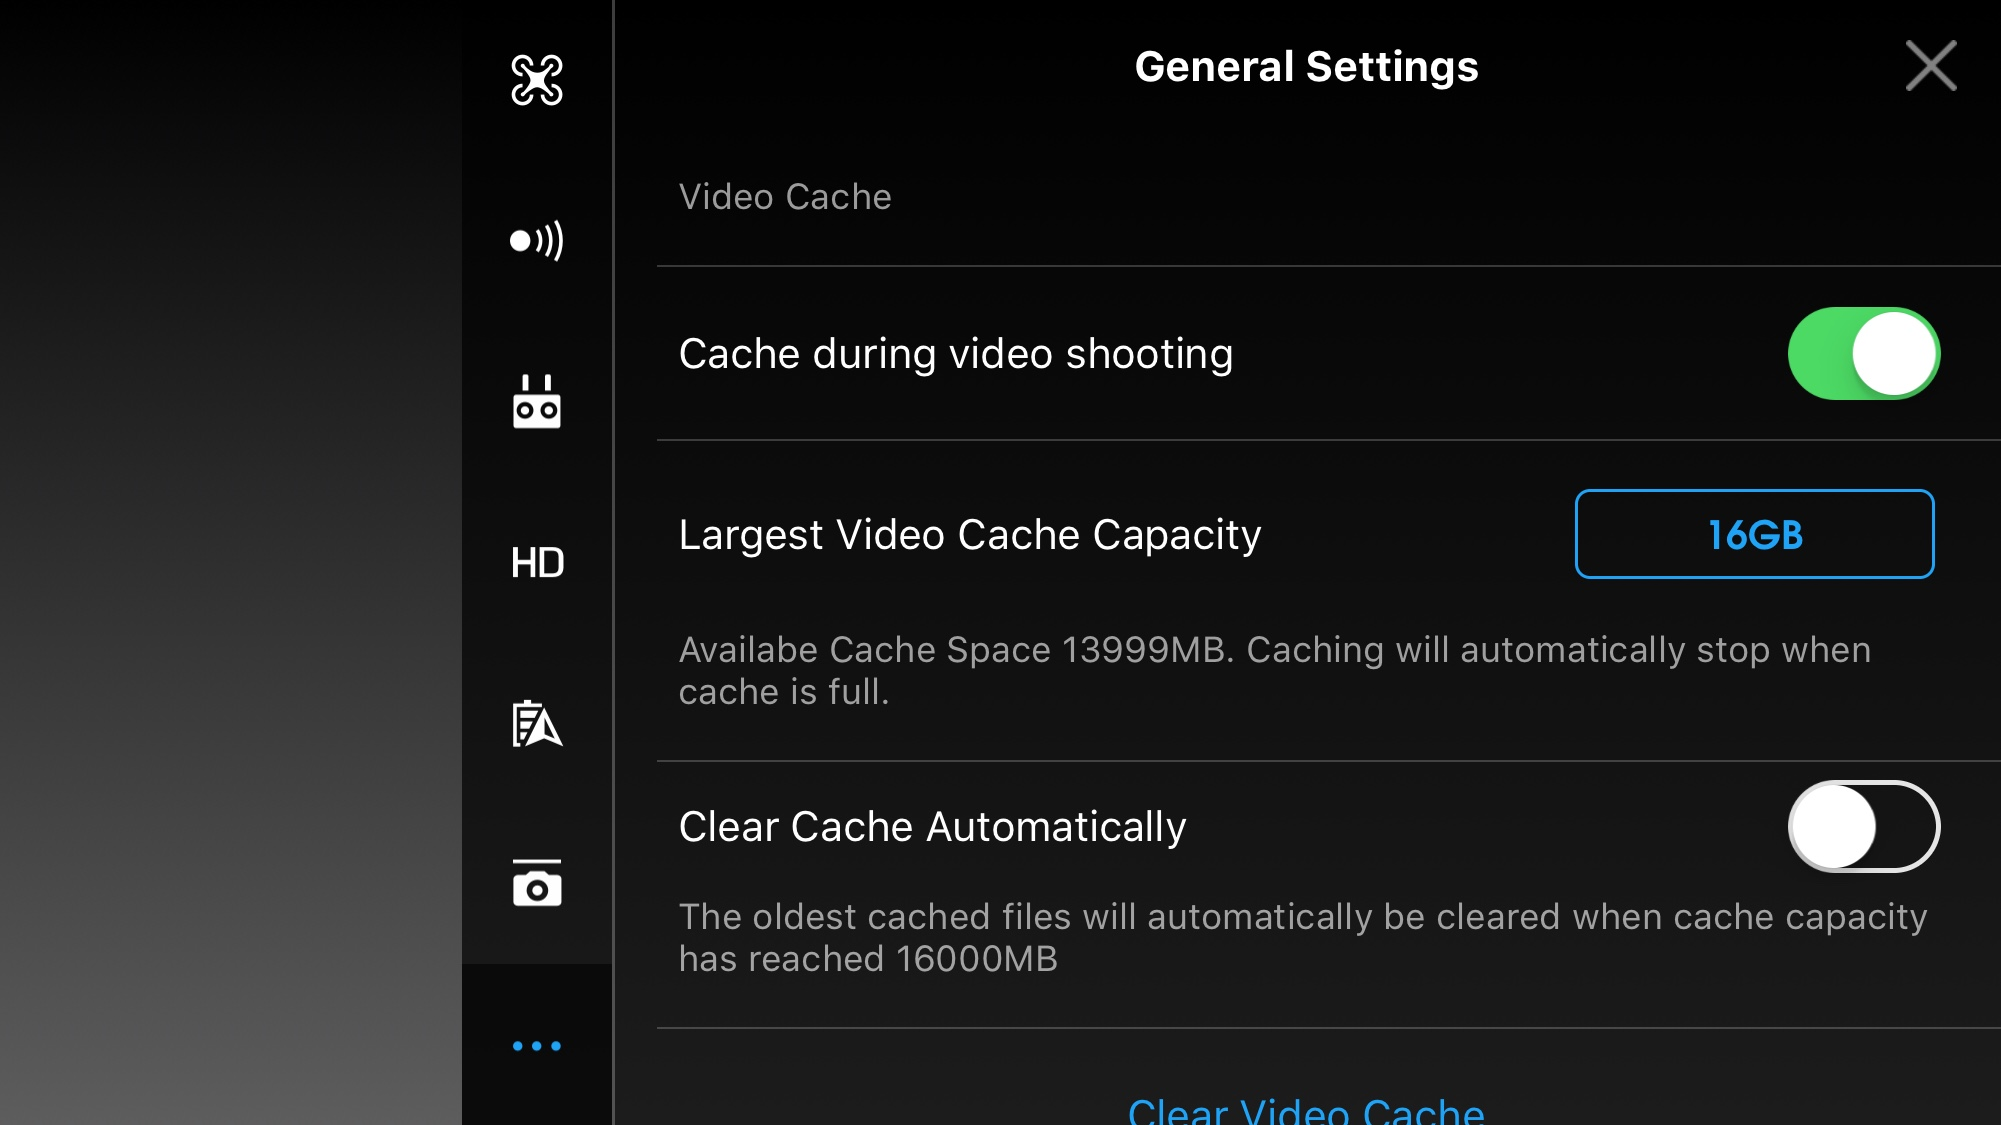 Picture This Is How I Have It Set Still Unable To Locate Where It Is Saving Video To Phone Dji Mavic Drone Forum Dji Video Editor Music Dji Video Editor Mavic Pro dpreview Dji Video Editor